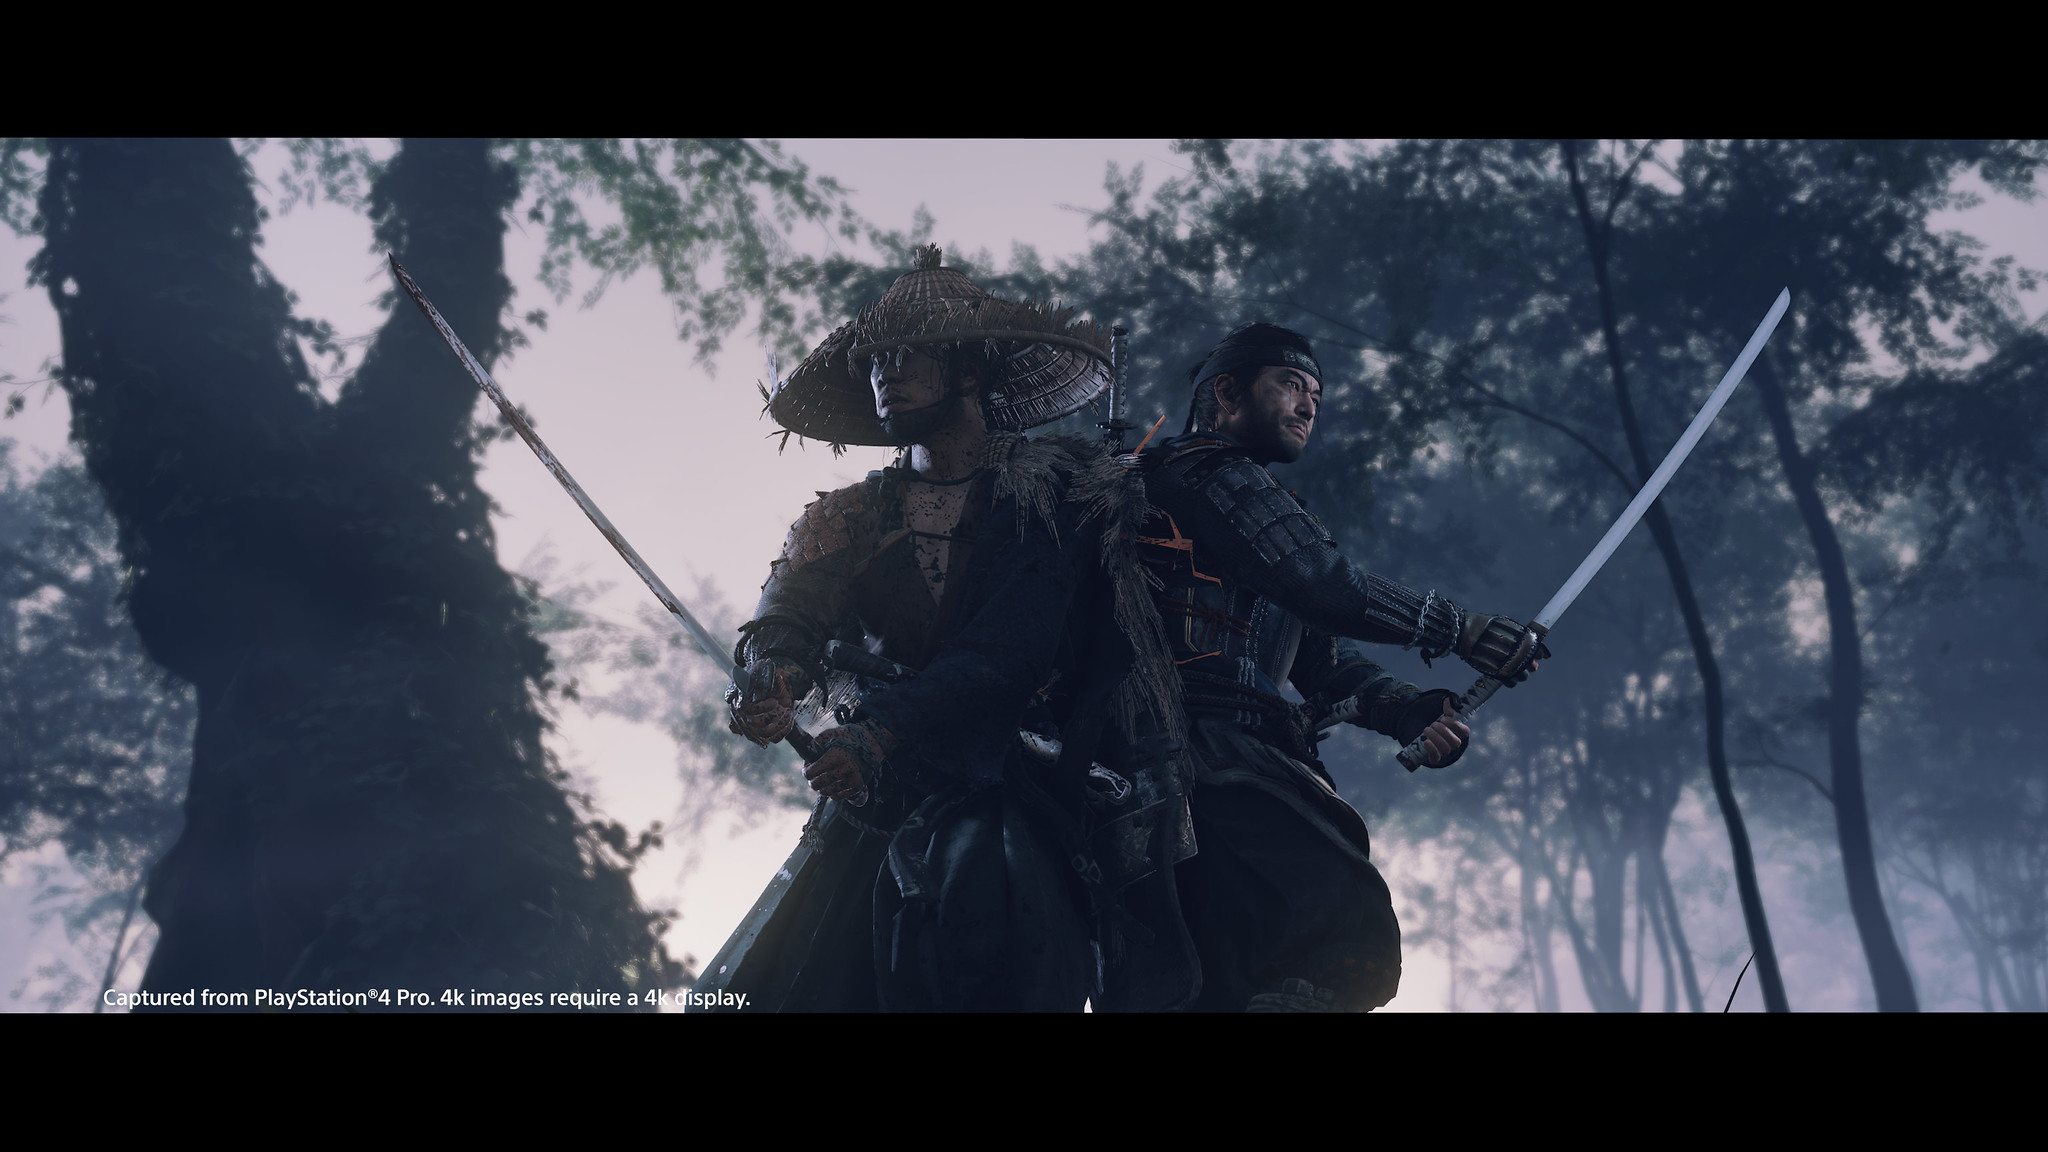 Ghost of Tsushima on PS4